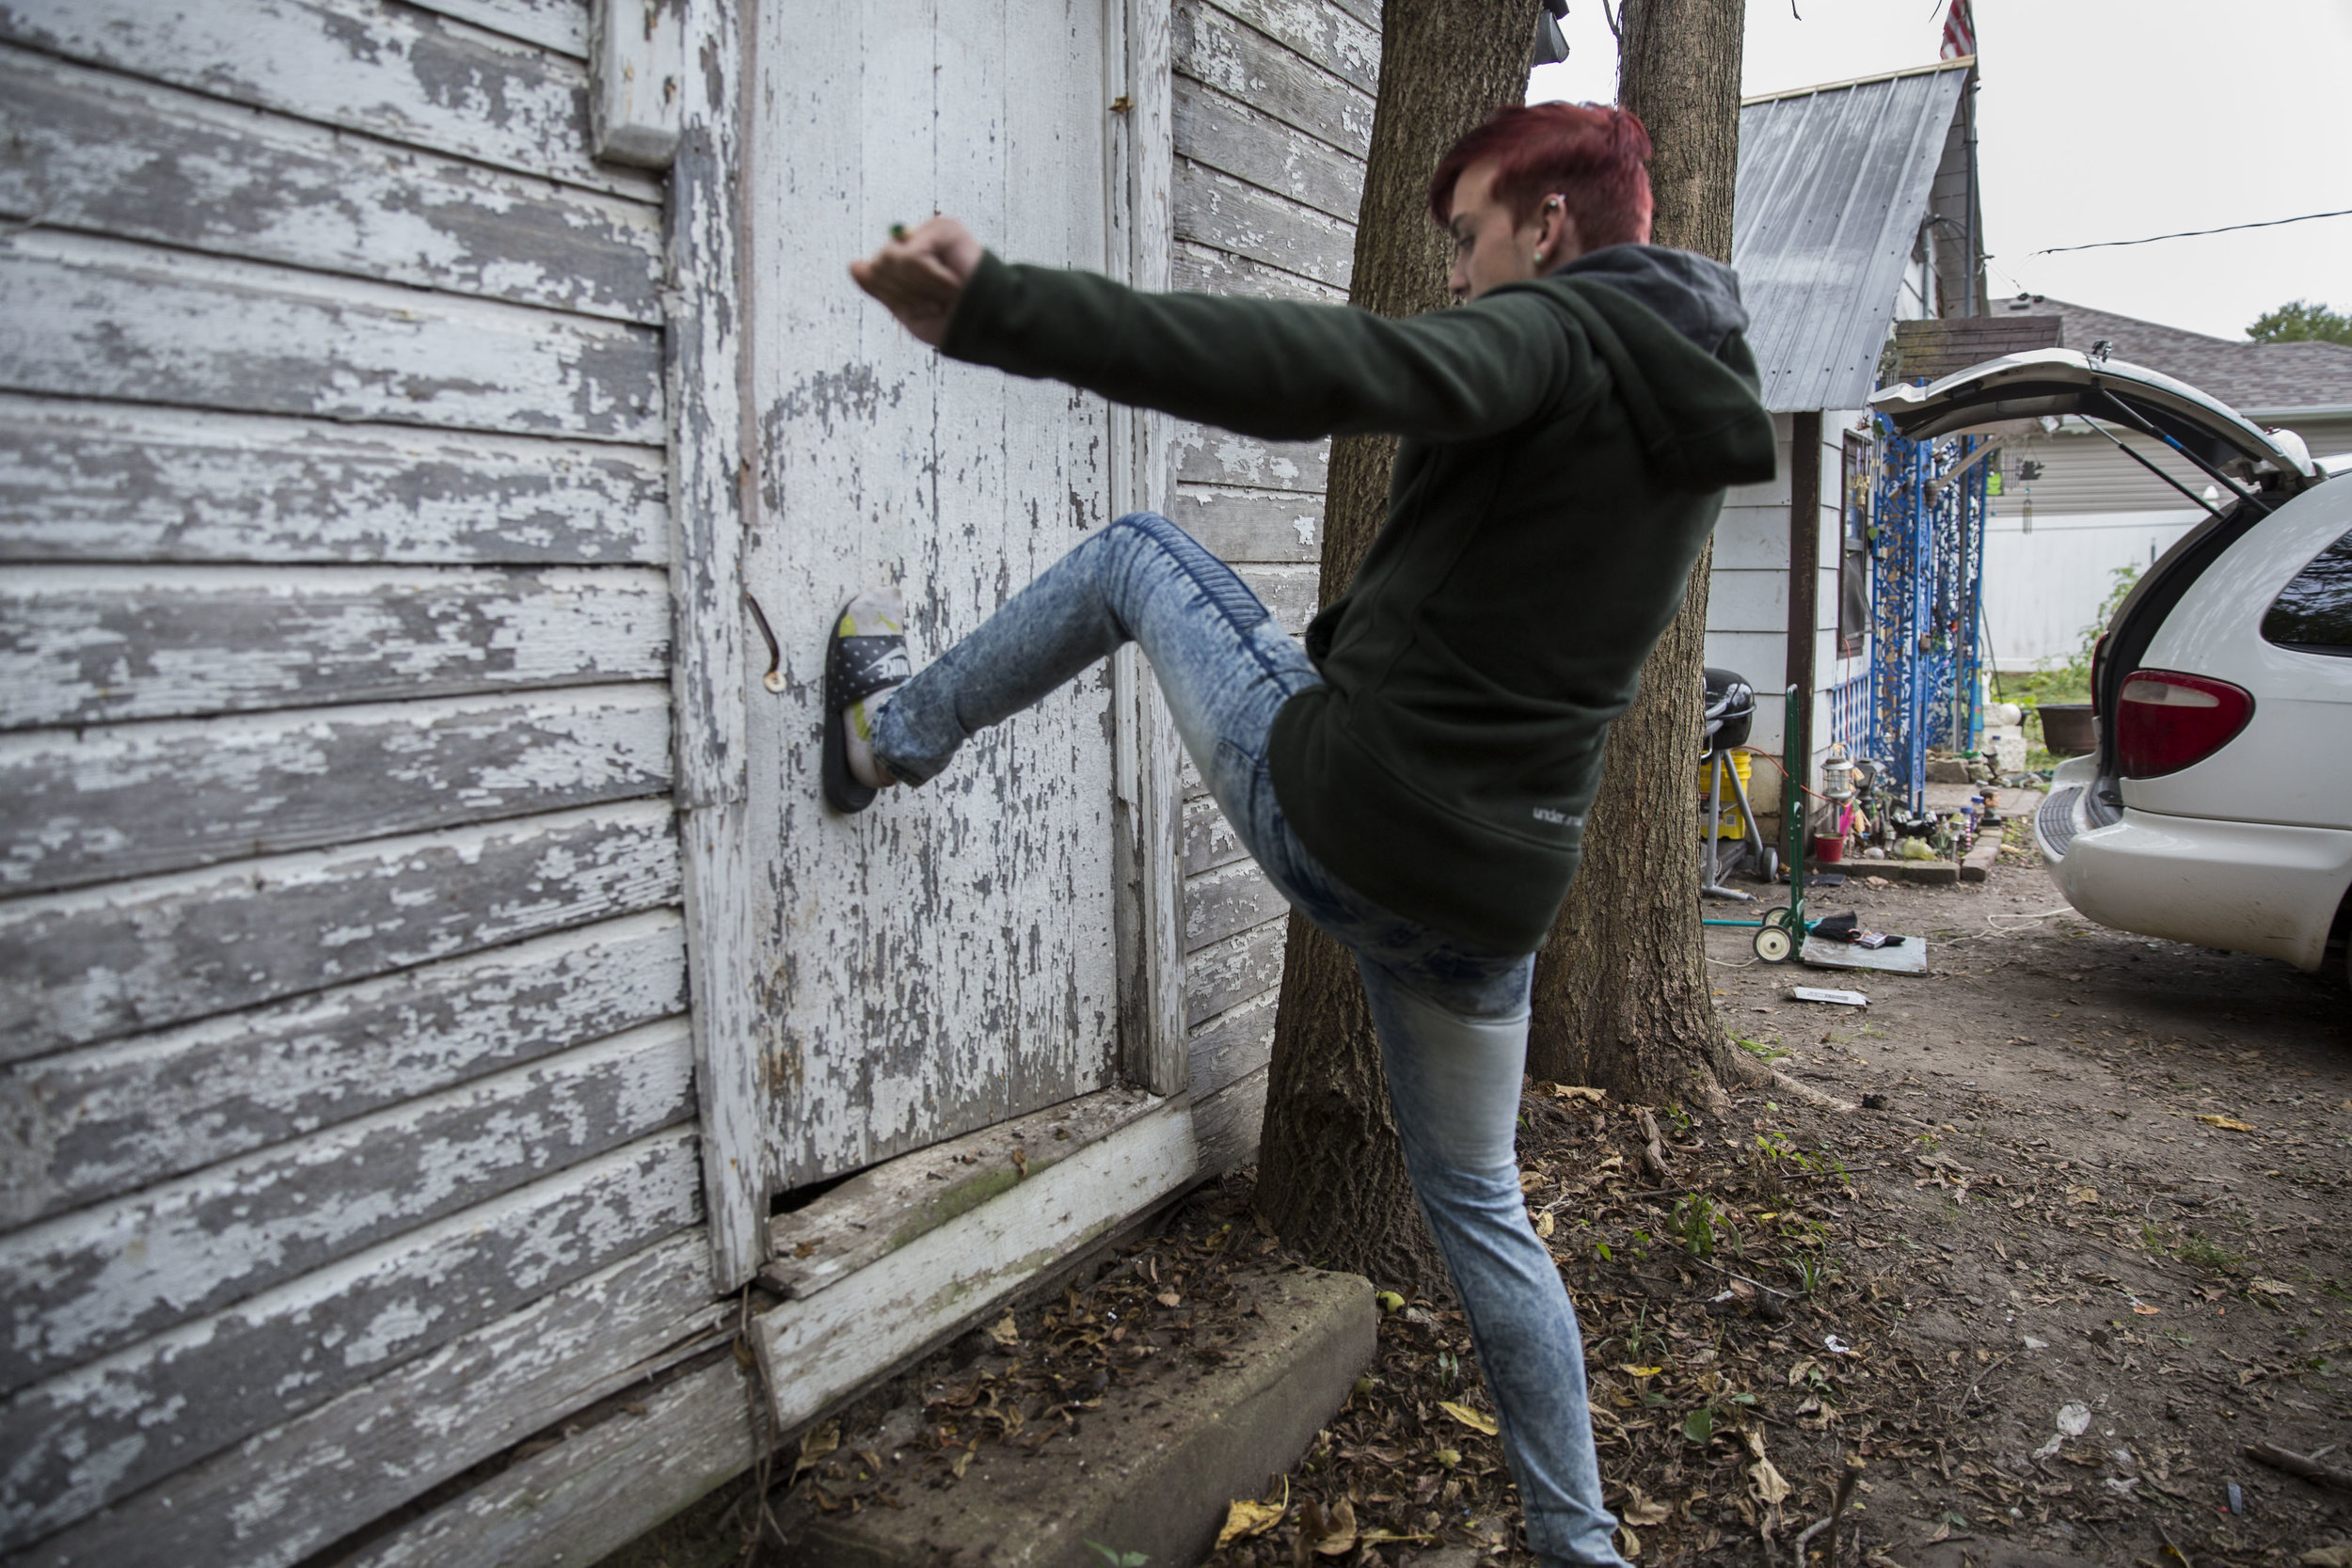 Billy kicks the door of an abandoned house next to Chris' home. These houses are often used by addicts as shelter to get high in.